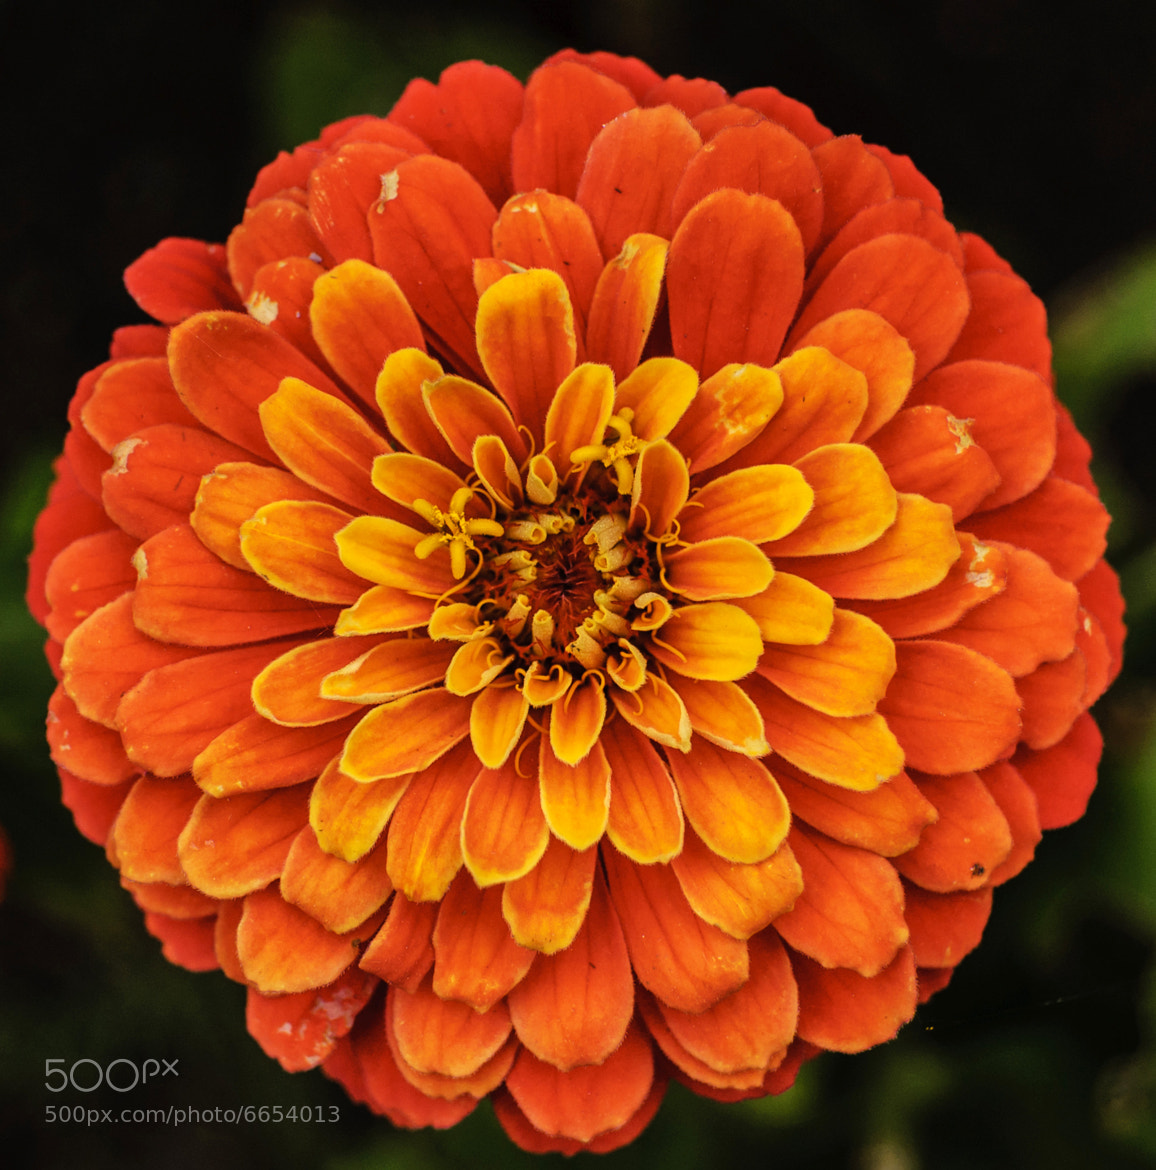 Photograph Flower by i500 ... on 500px